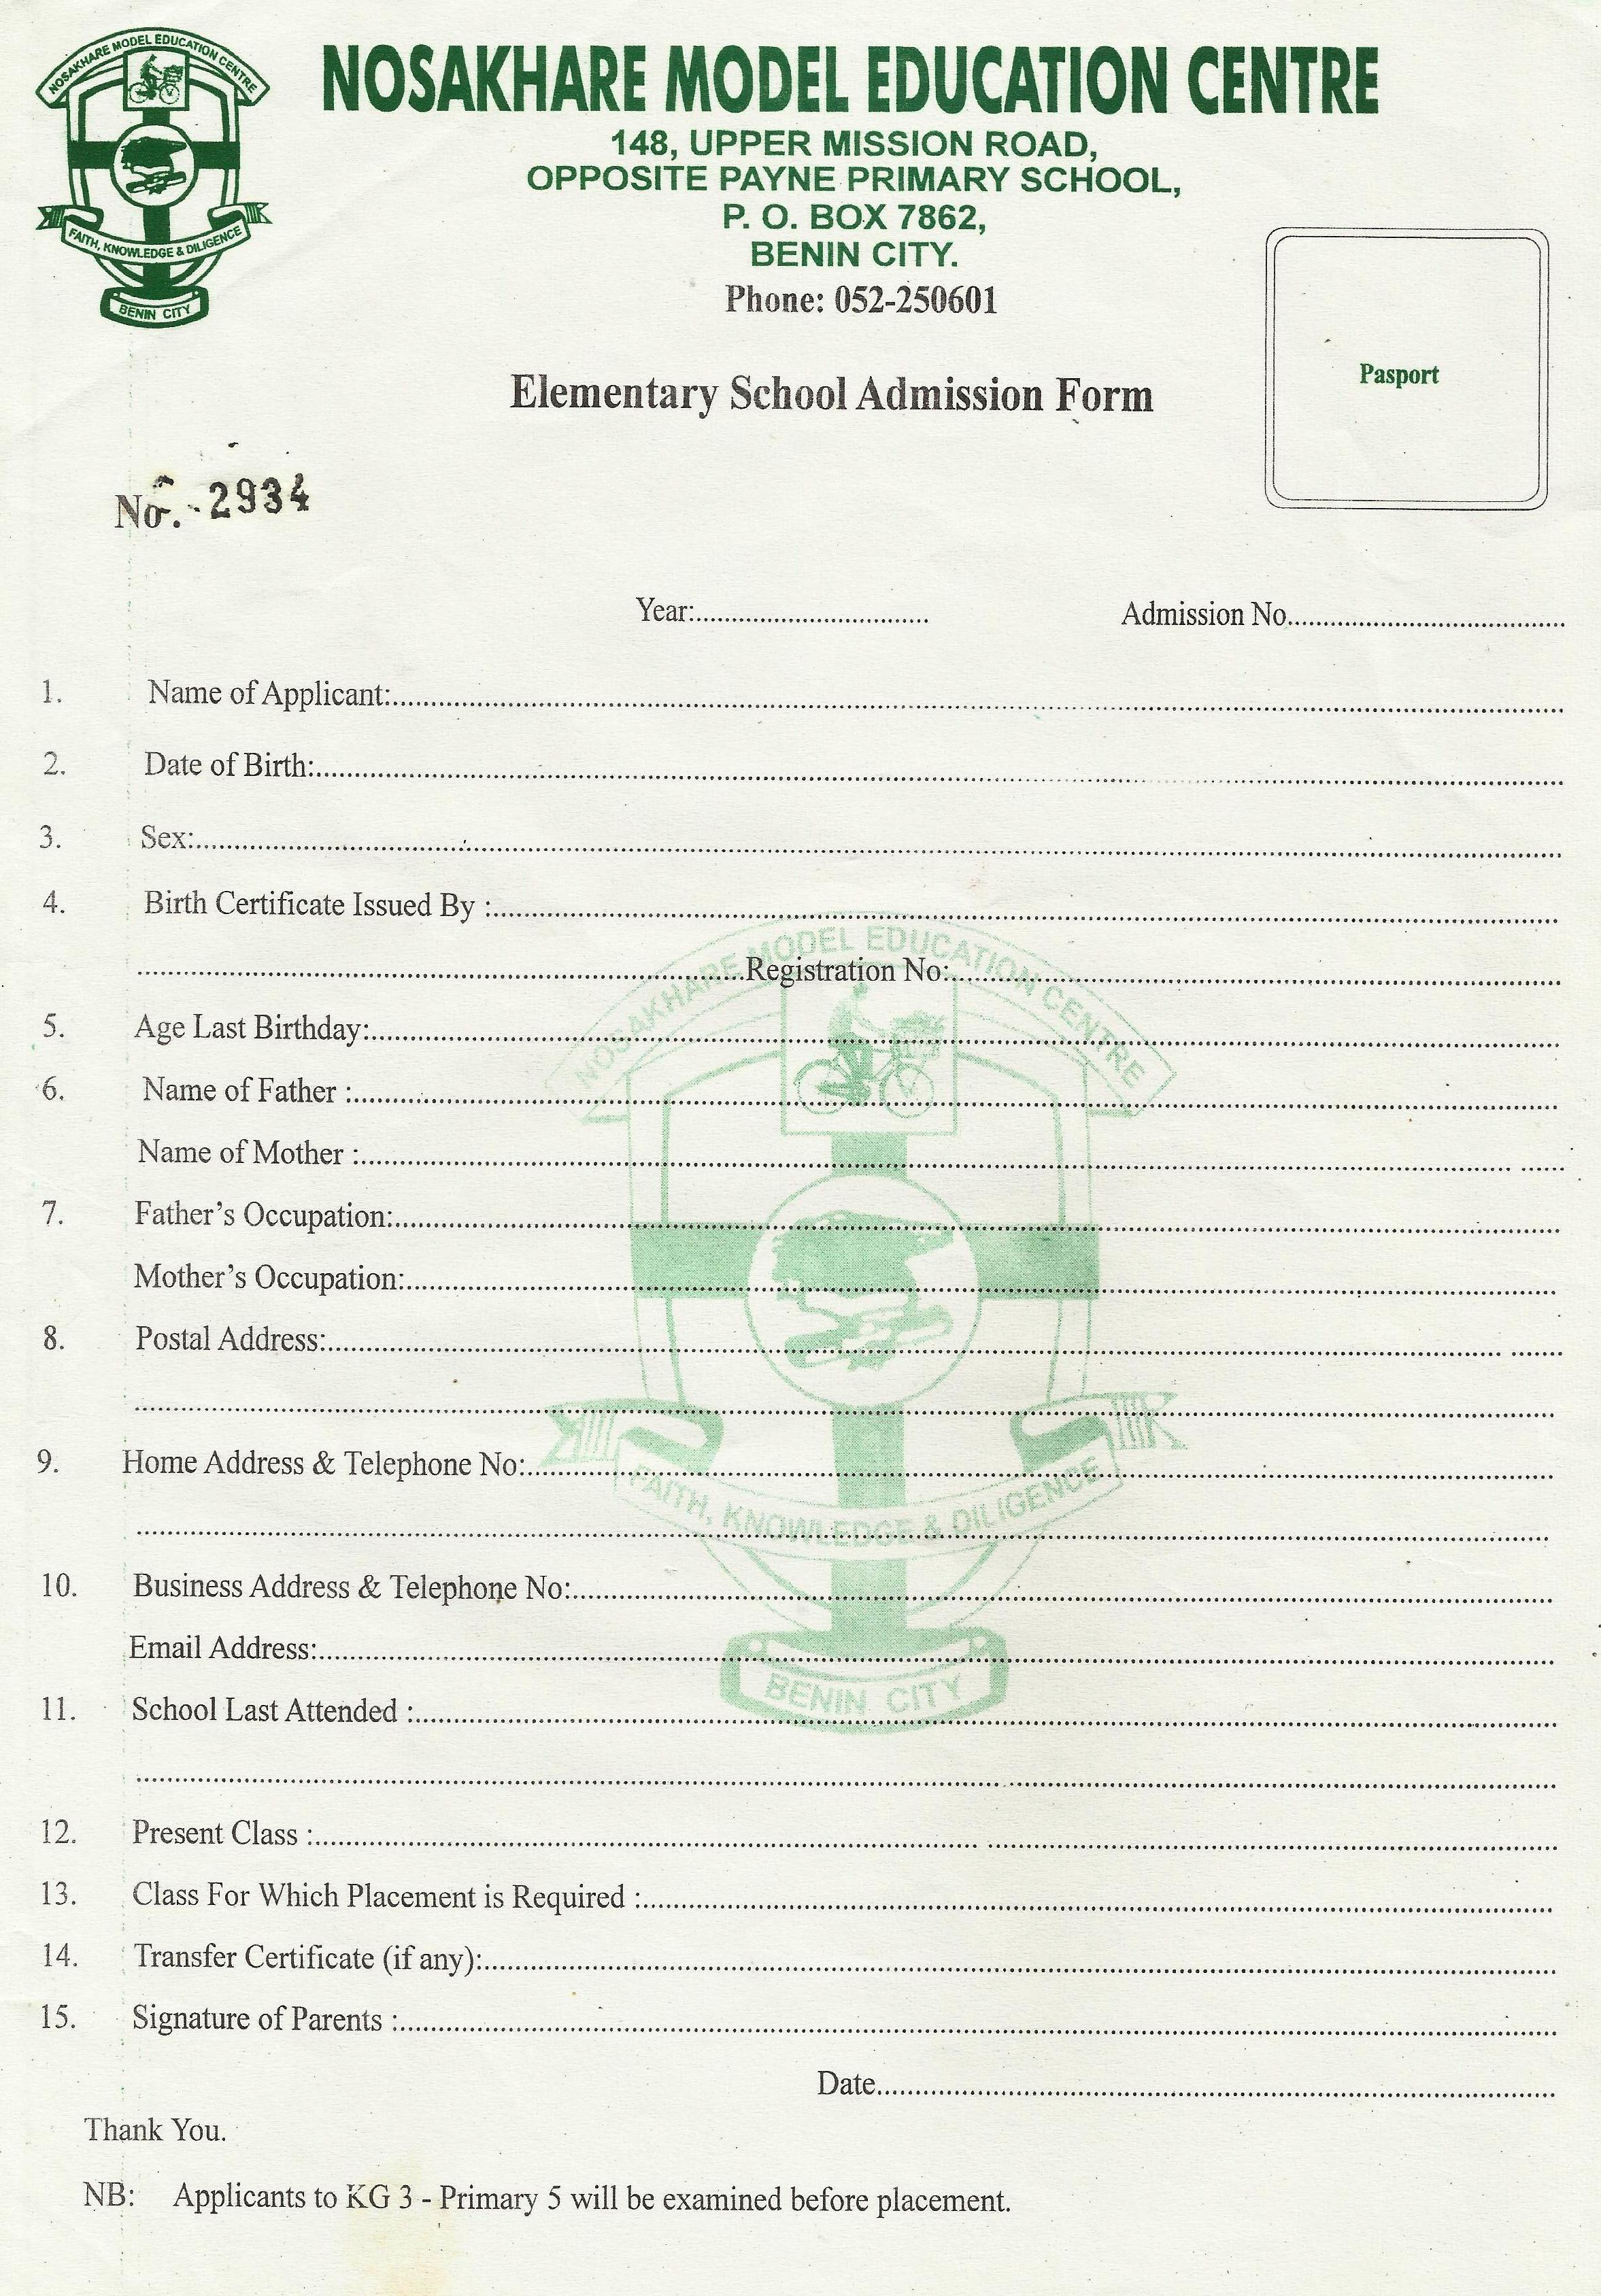 Elementary School Admission Form NOSAKHARE MODEL EDUCATION CENTRE – School Admission Form Sample